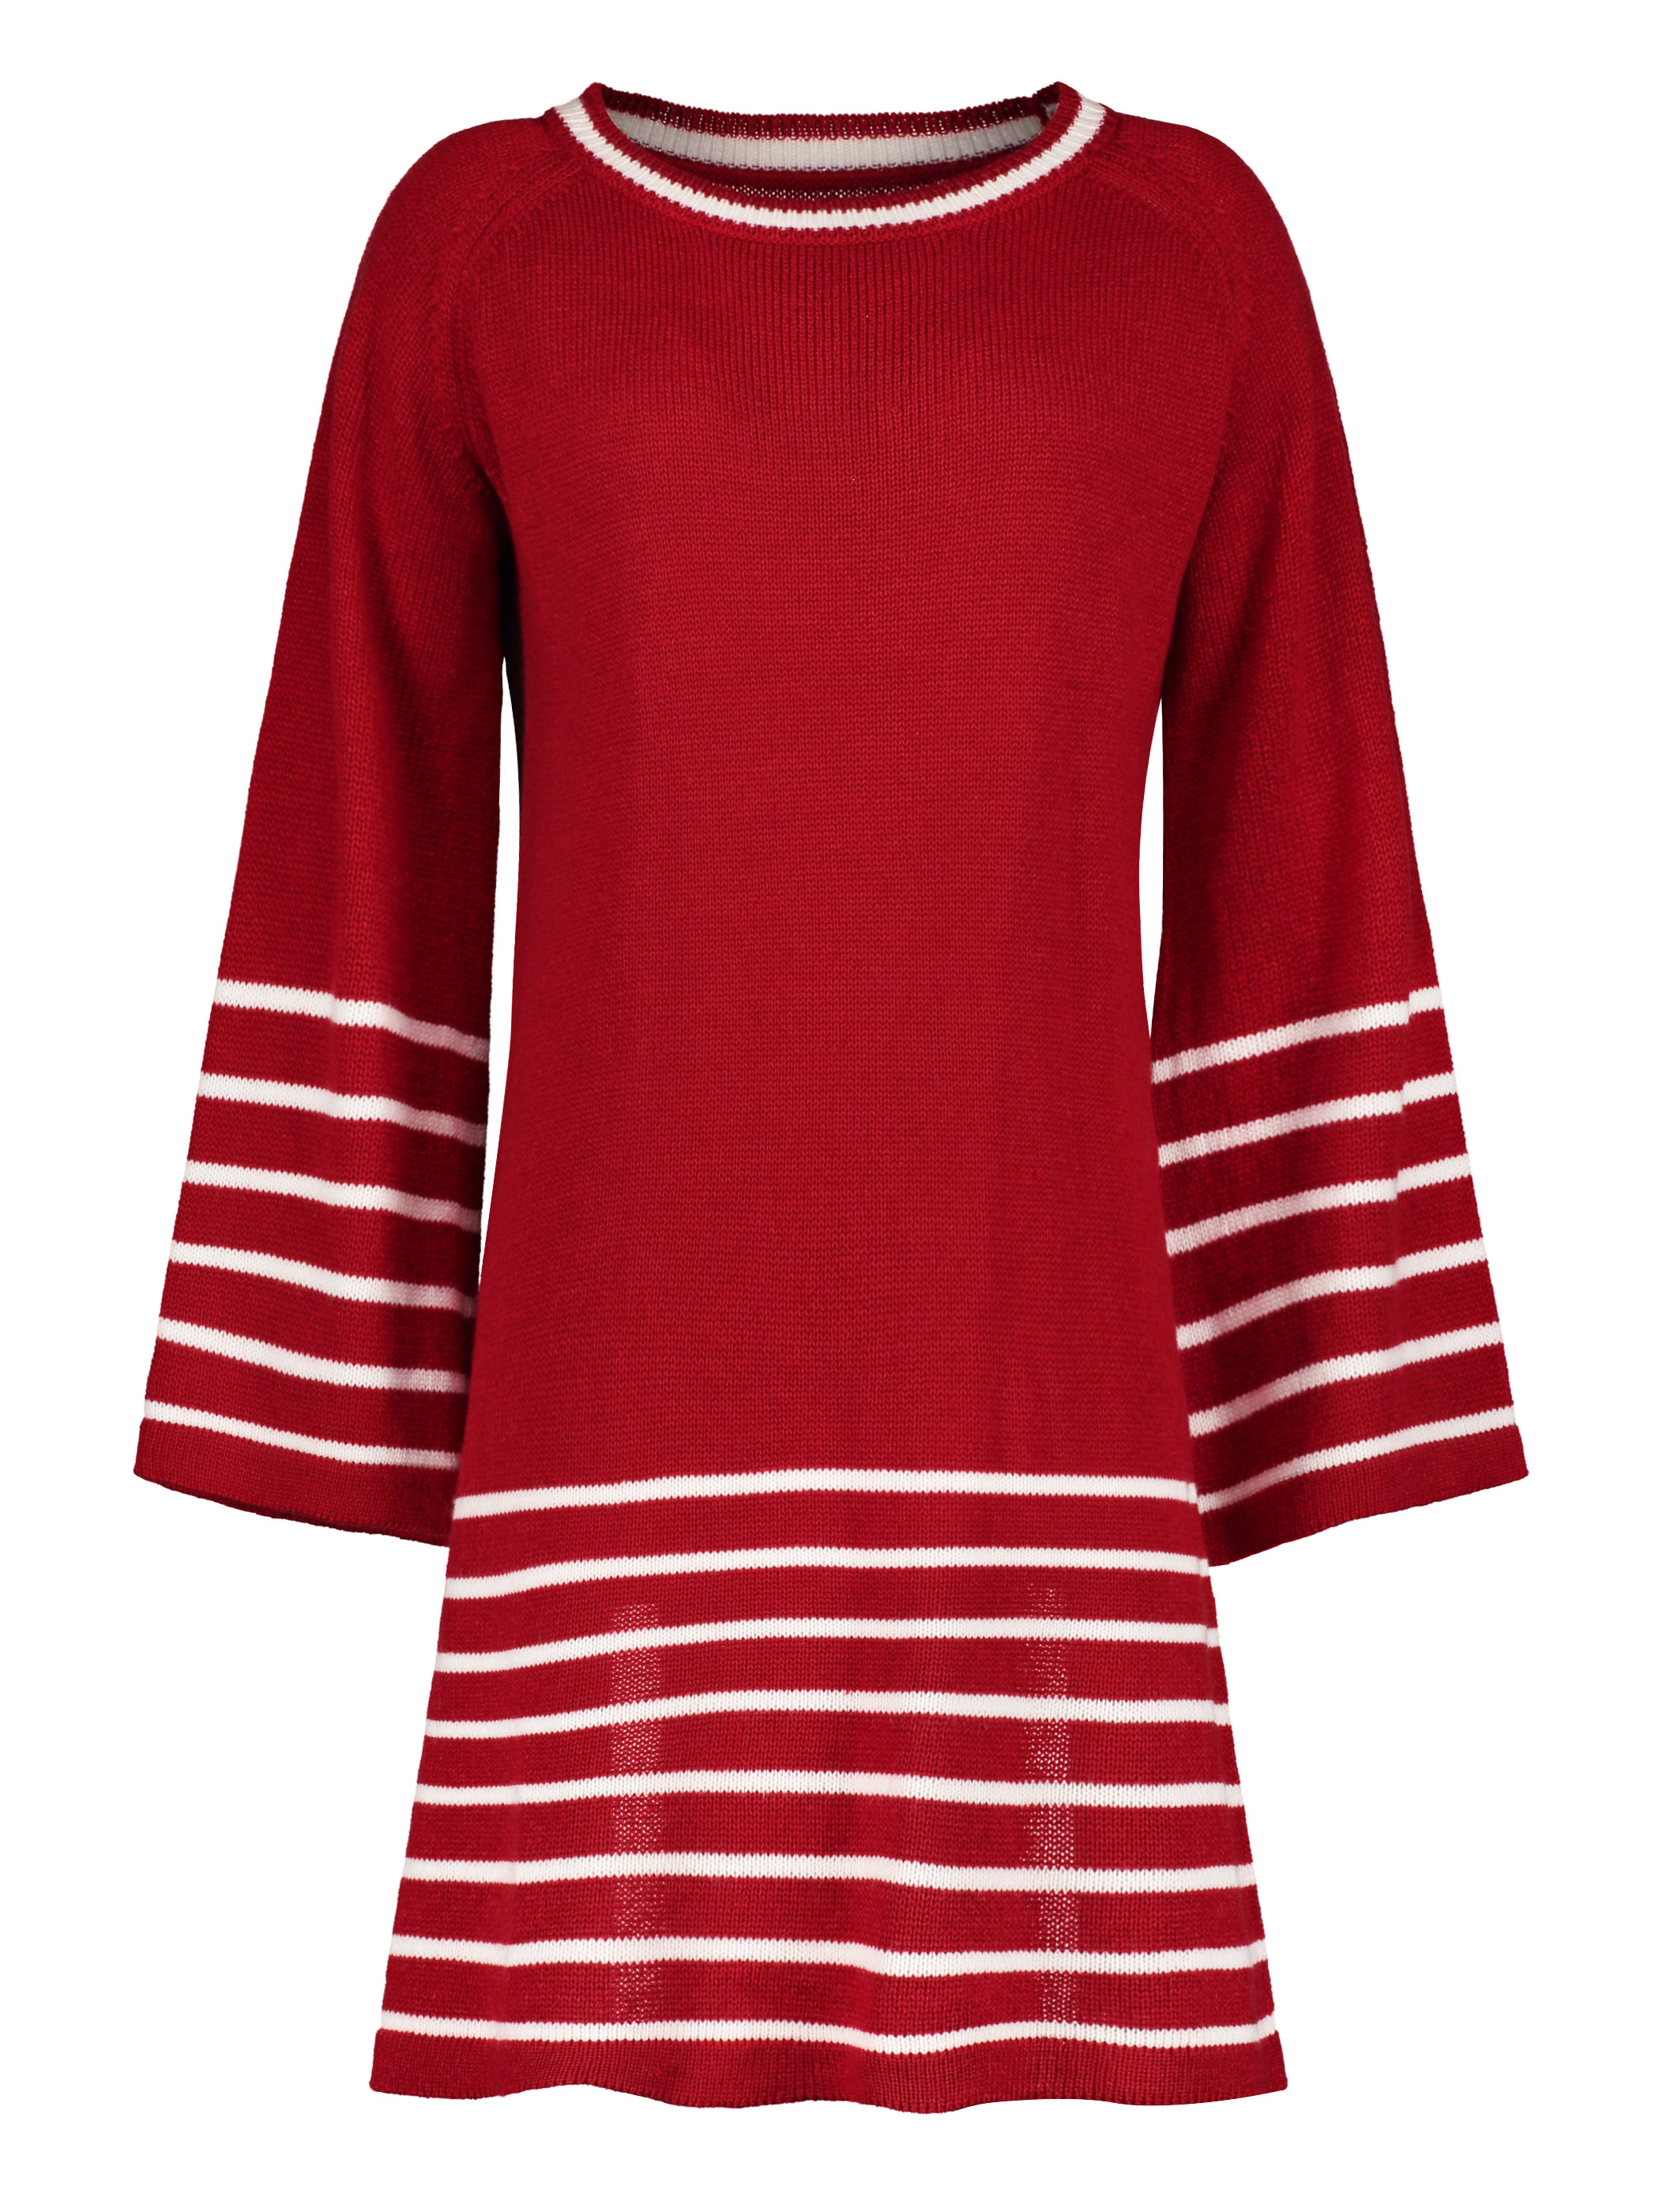 Casual O neck long knitted sweater dress women Cotton slim A line dress knee length pullover female Spring winter striped dress